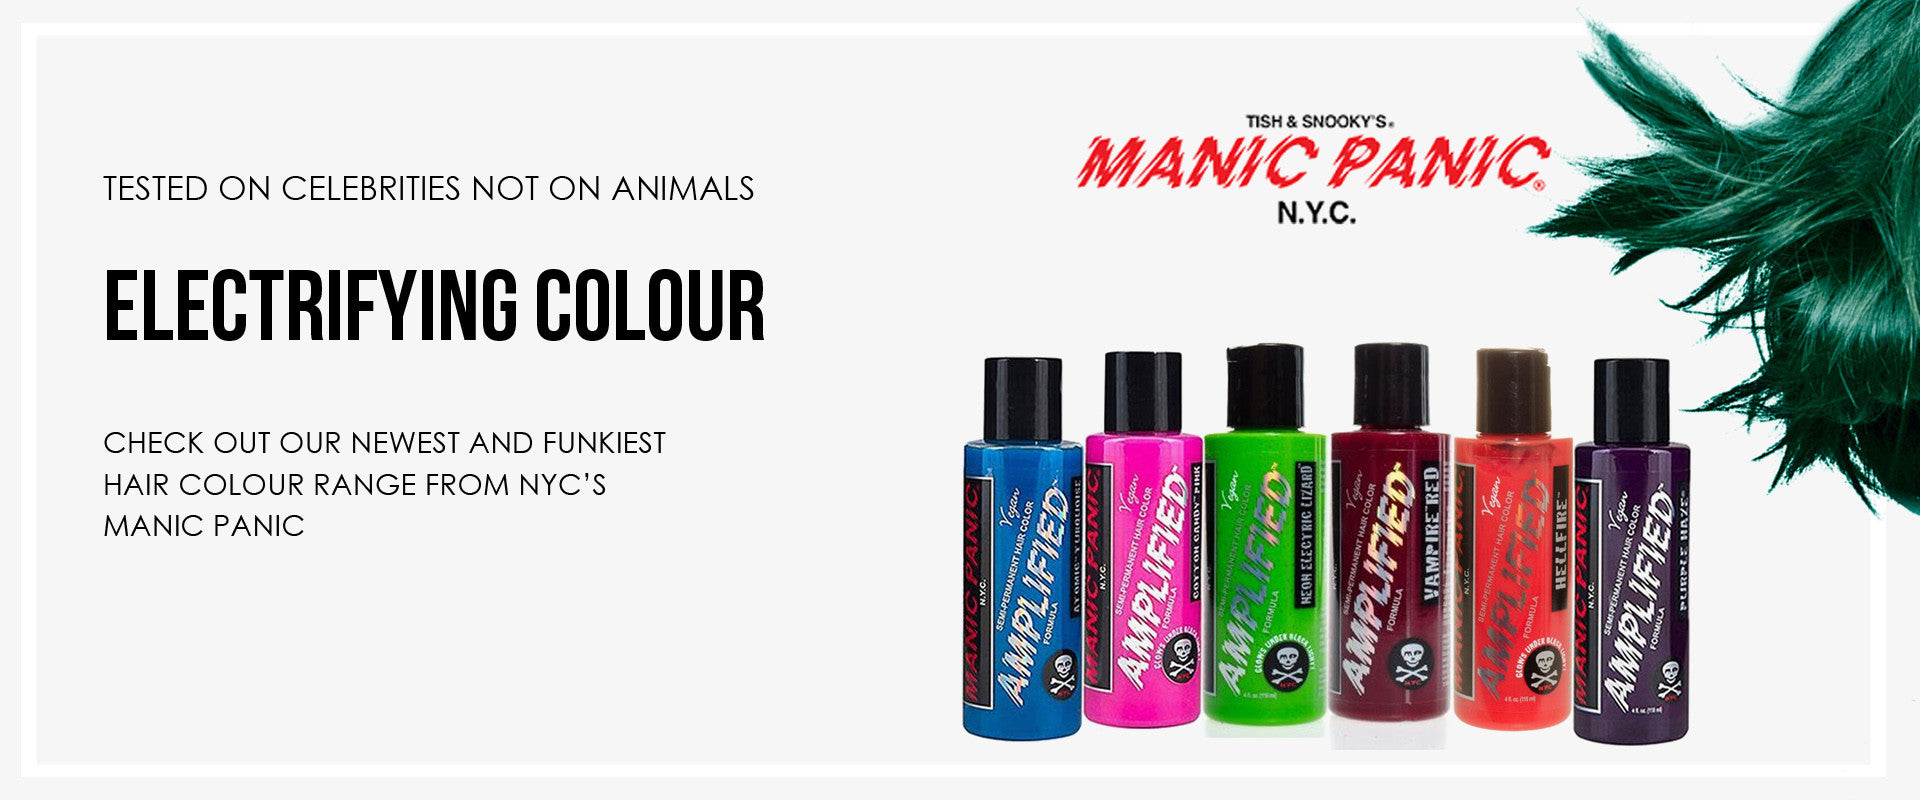 Manic Panic Amplified Collection